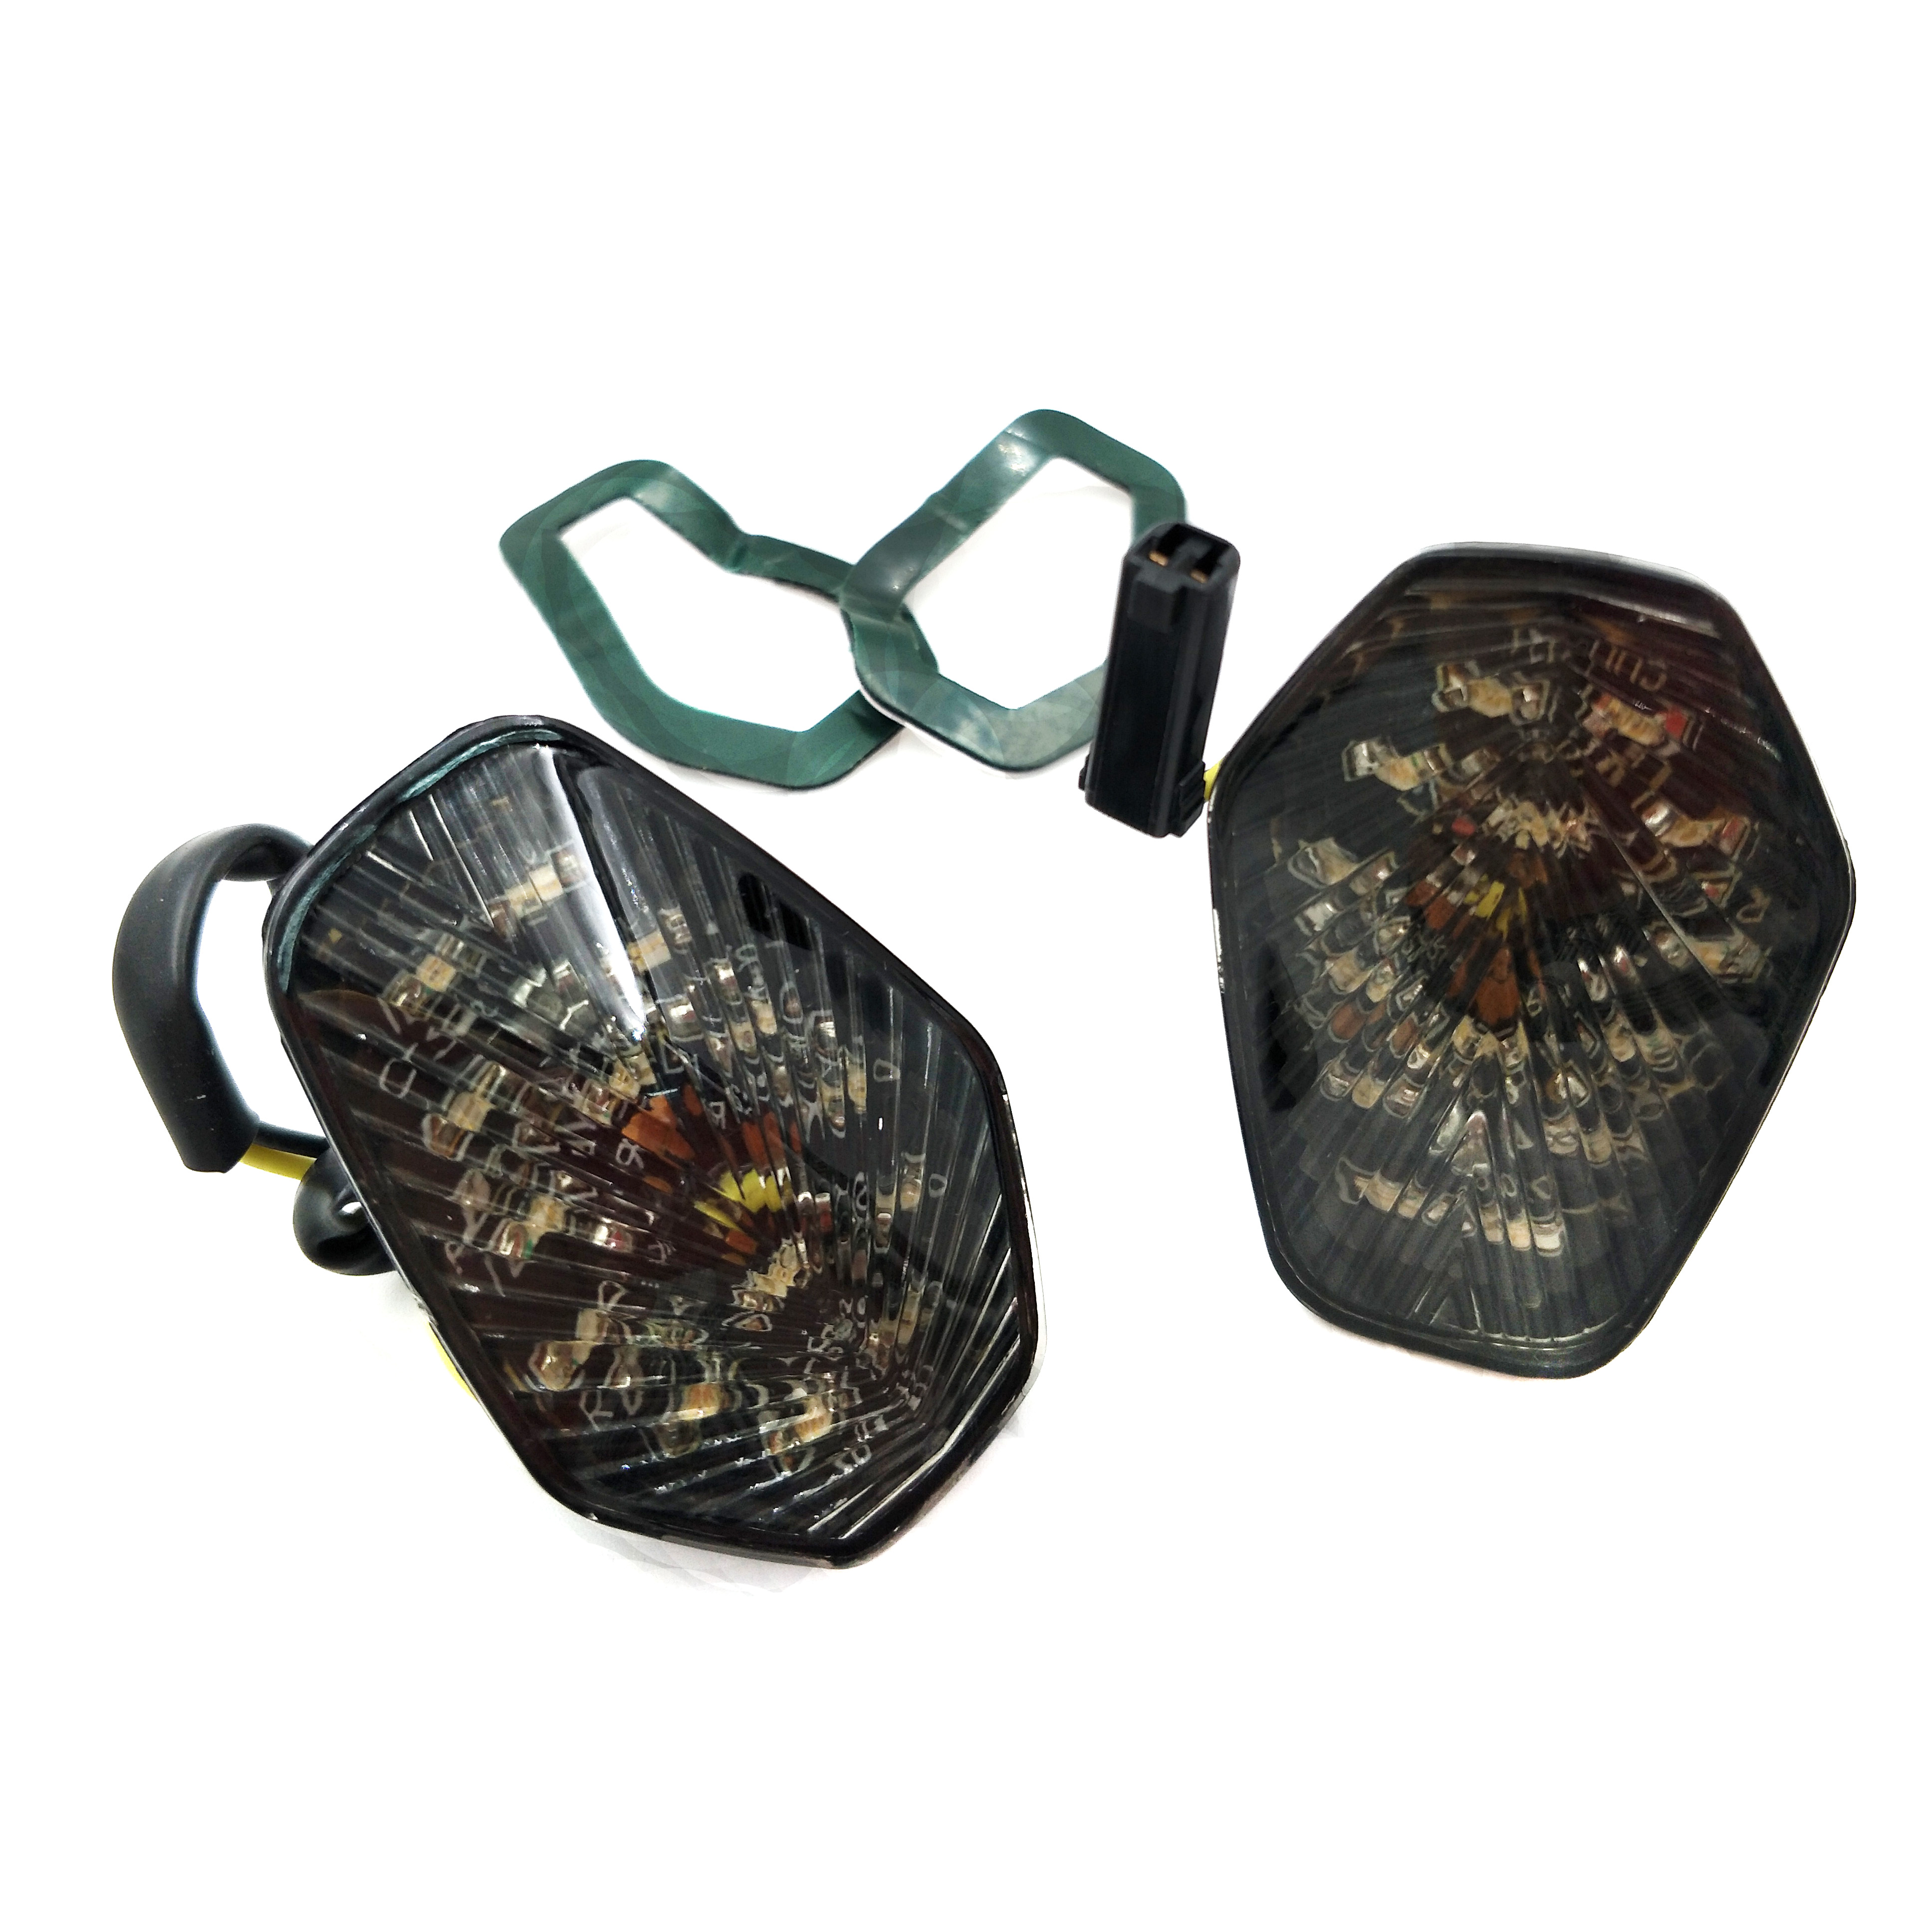 Aftermarket free shipping motorcycle parts LED Turn Signal <font><b>lights</b></font> for suzuki <font><b>GSXR</b></font> <font><b>600</b></font> 750 1000 2001 2002 2003 2004 Smoke image